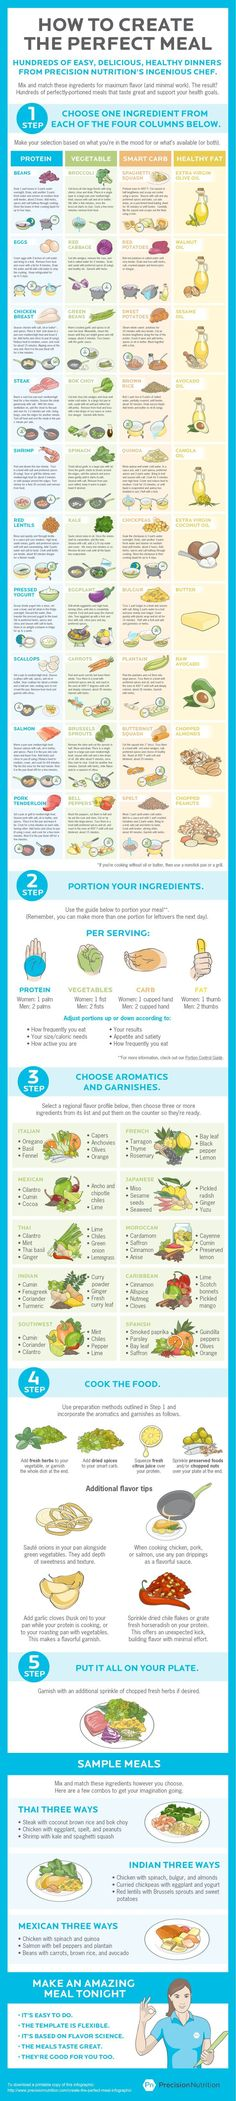 Create the perfect meal with this simple 5-step guide: www.precisionnutr...